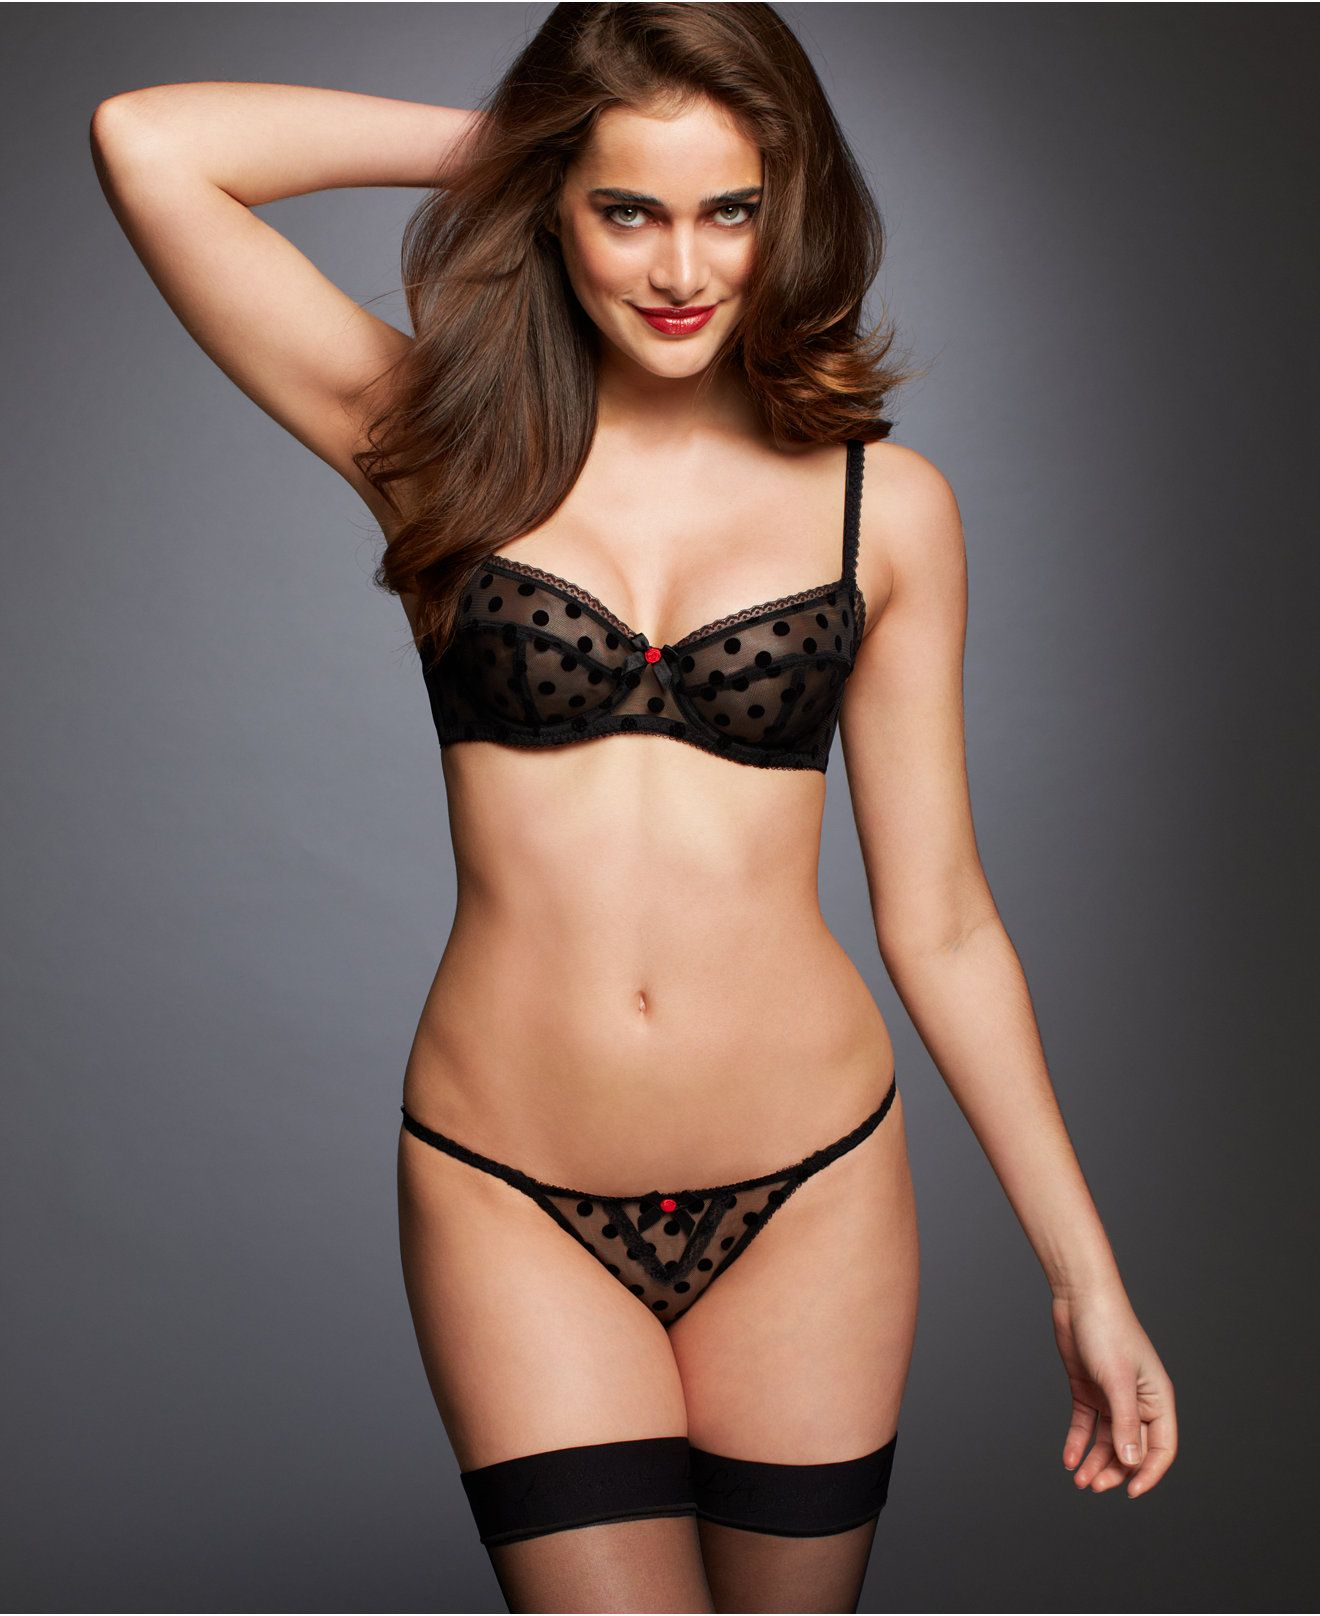 d815f54afd701 L Agent by Agent Provocateur Rosalyn Balcony Bra and Thong - Sexy Lingerie  - Women - Macy s